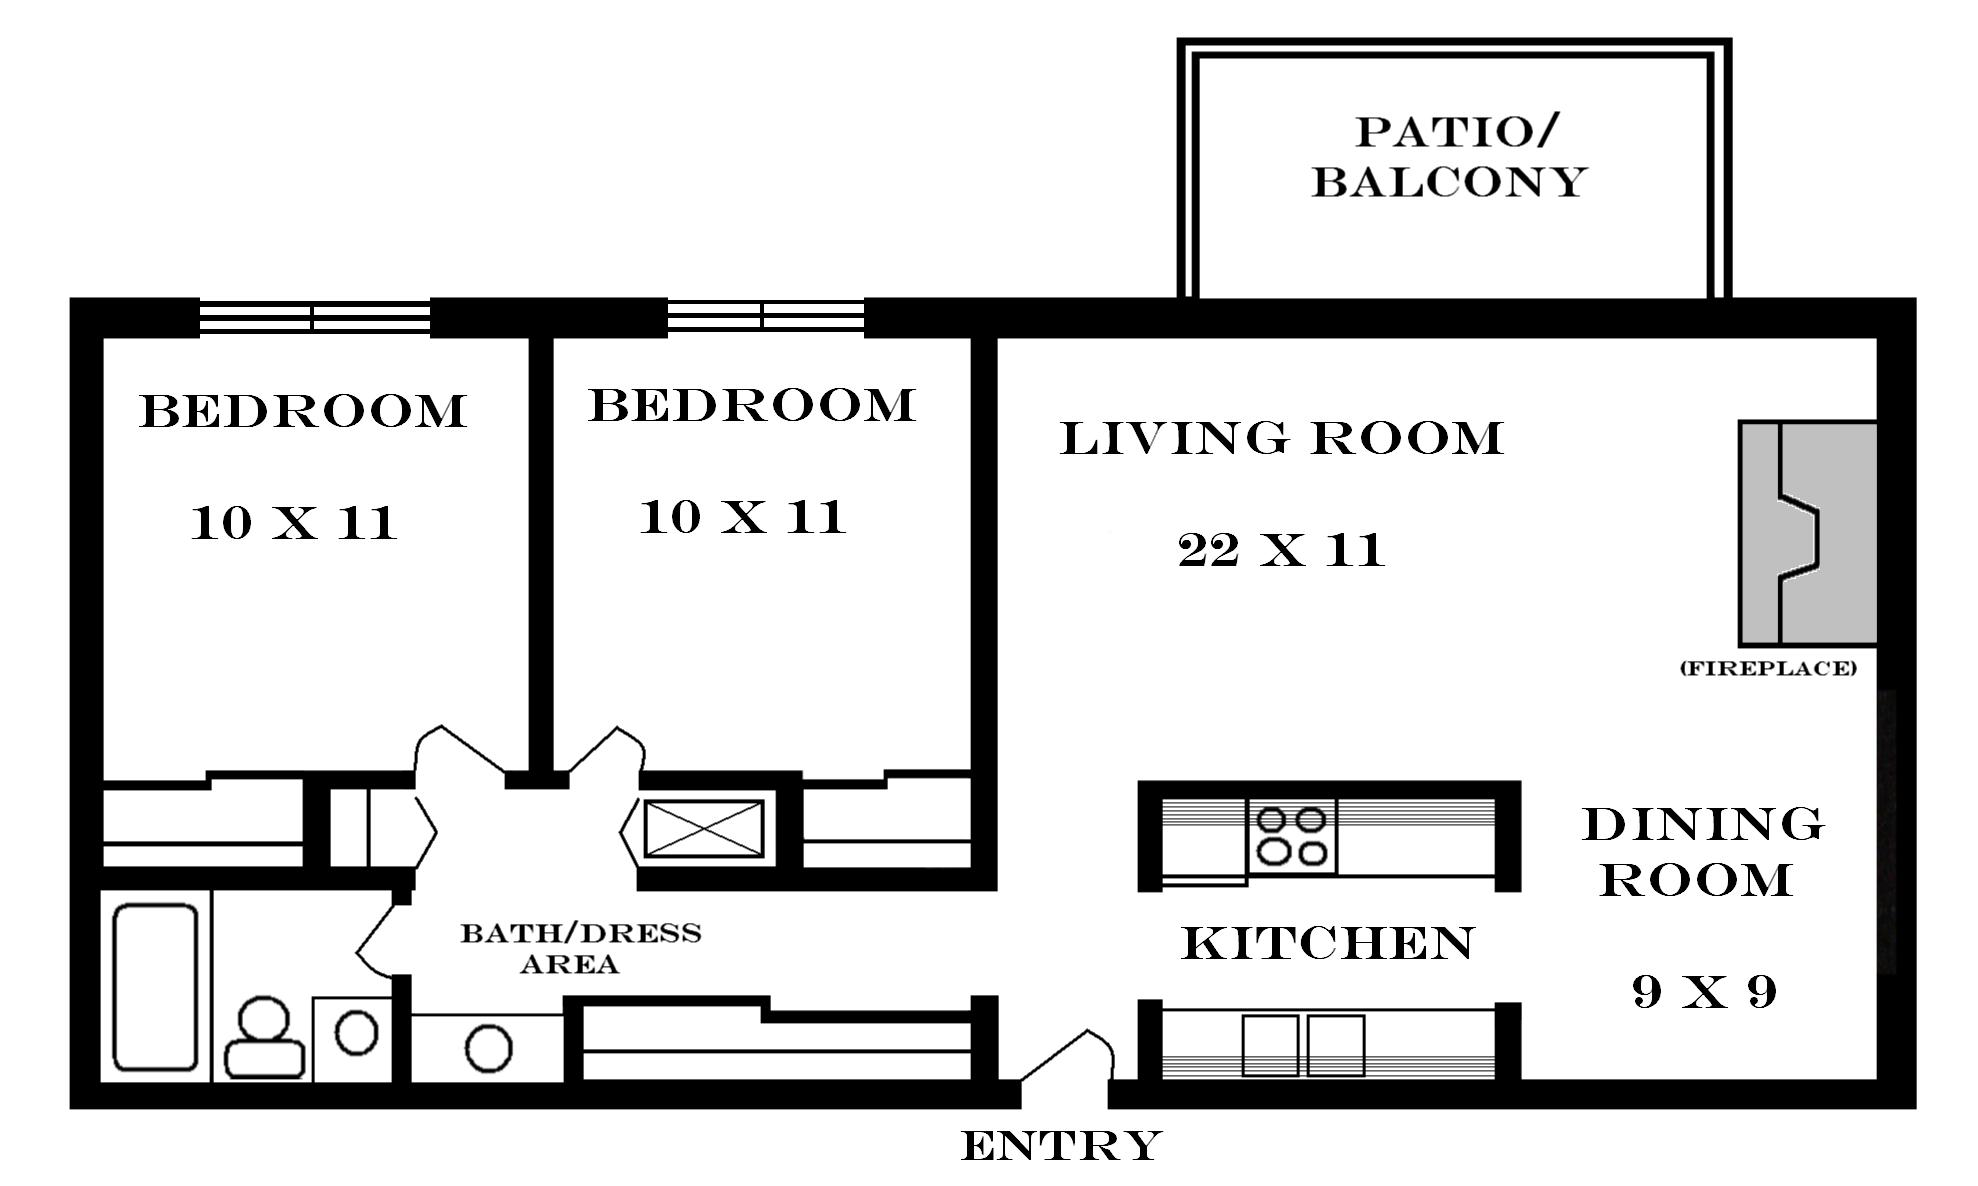 2 Bedroom Apartment Plans Lawrence Apartments Meadowbrook 2601 Dover Square